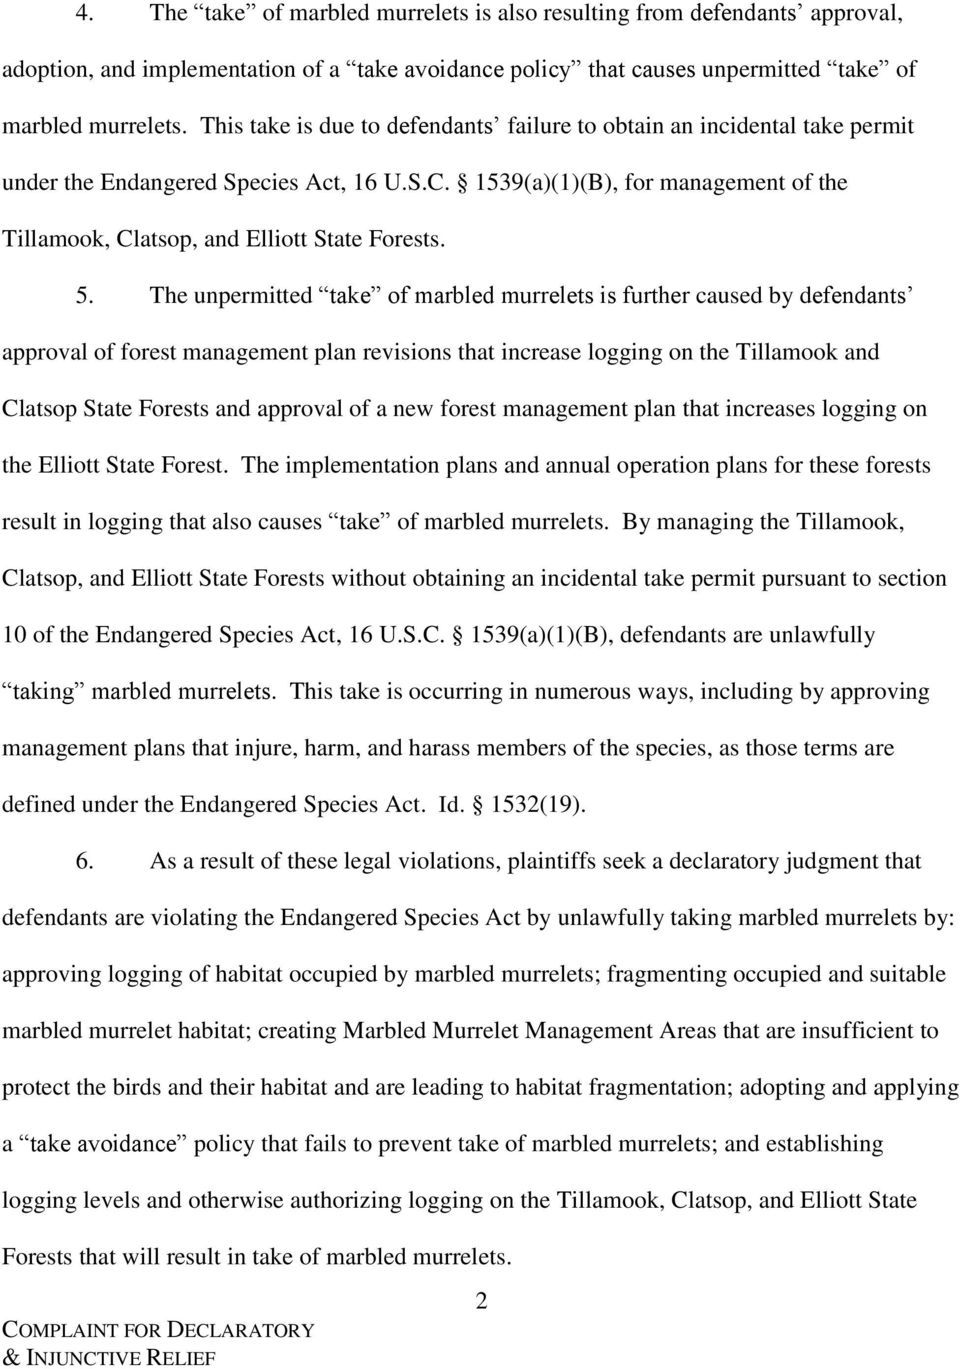 1539(a)(1)(B), for management of the Tillamook, Clatsop, and Elliott State Forests. 5.